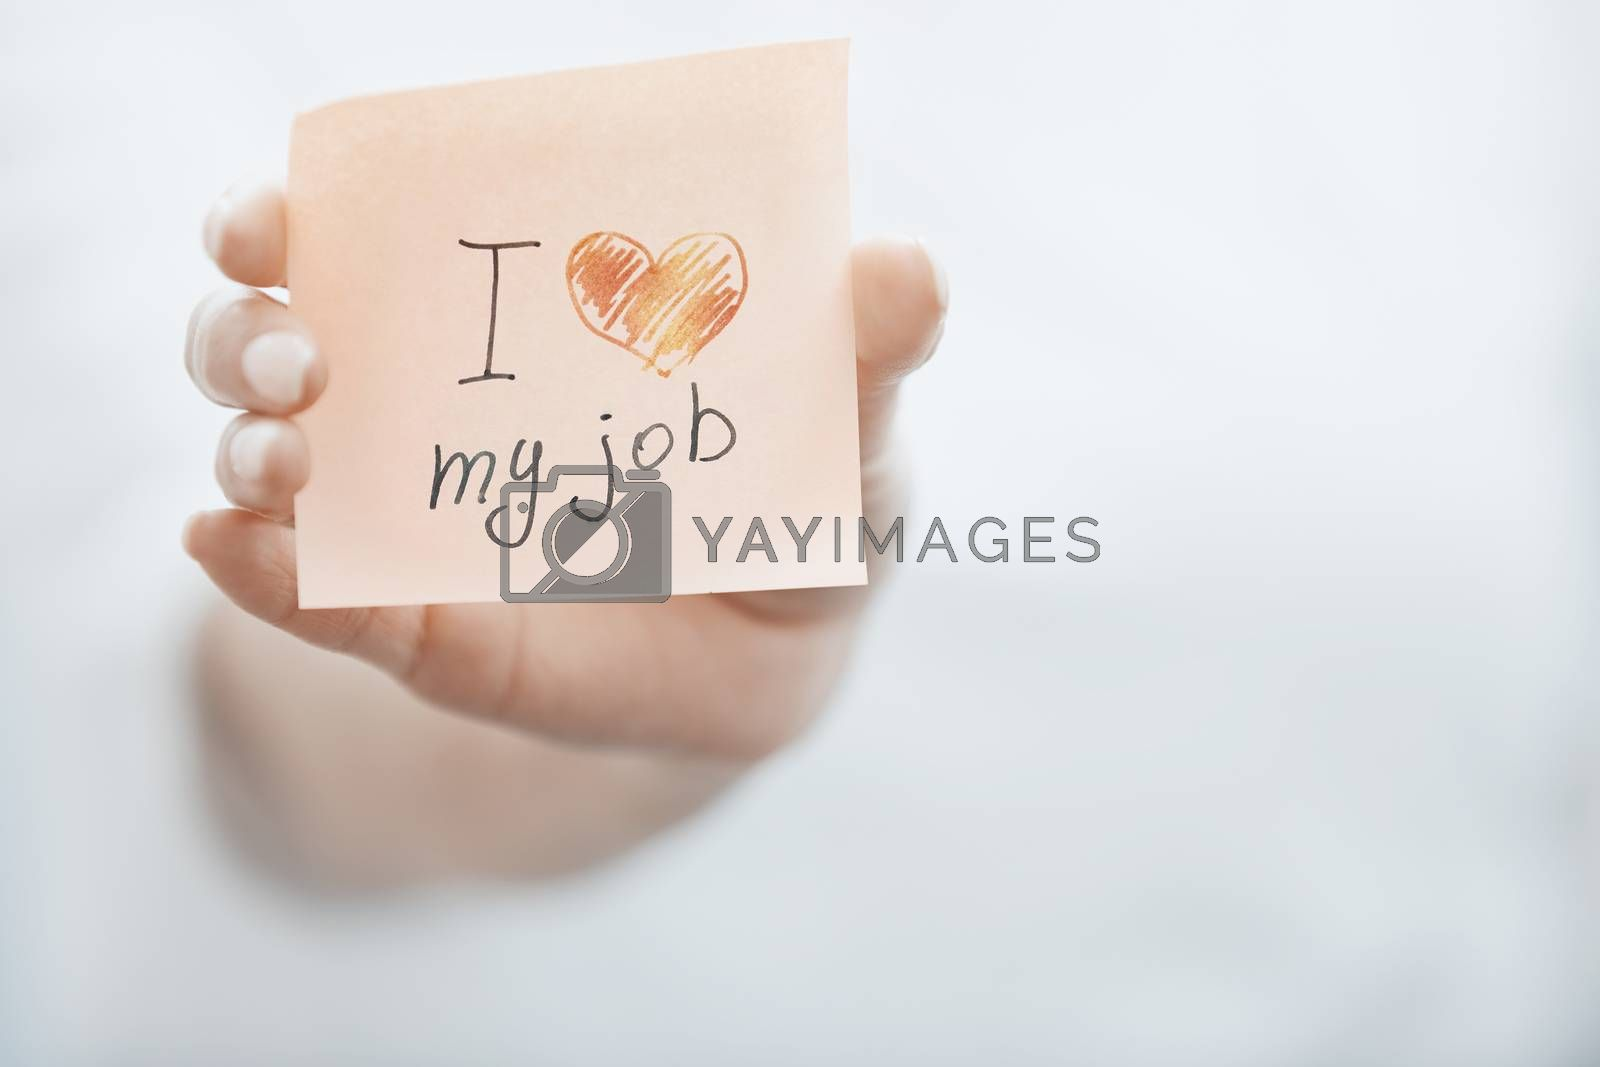 Hand of woman holding adhesive note with text